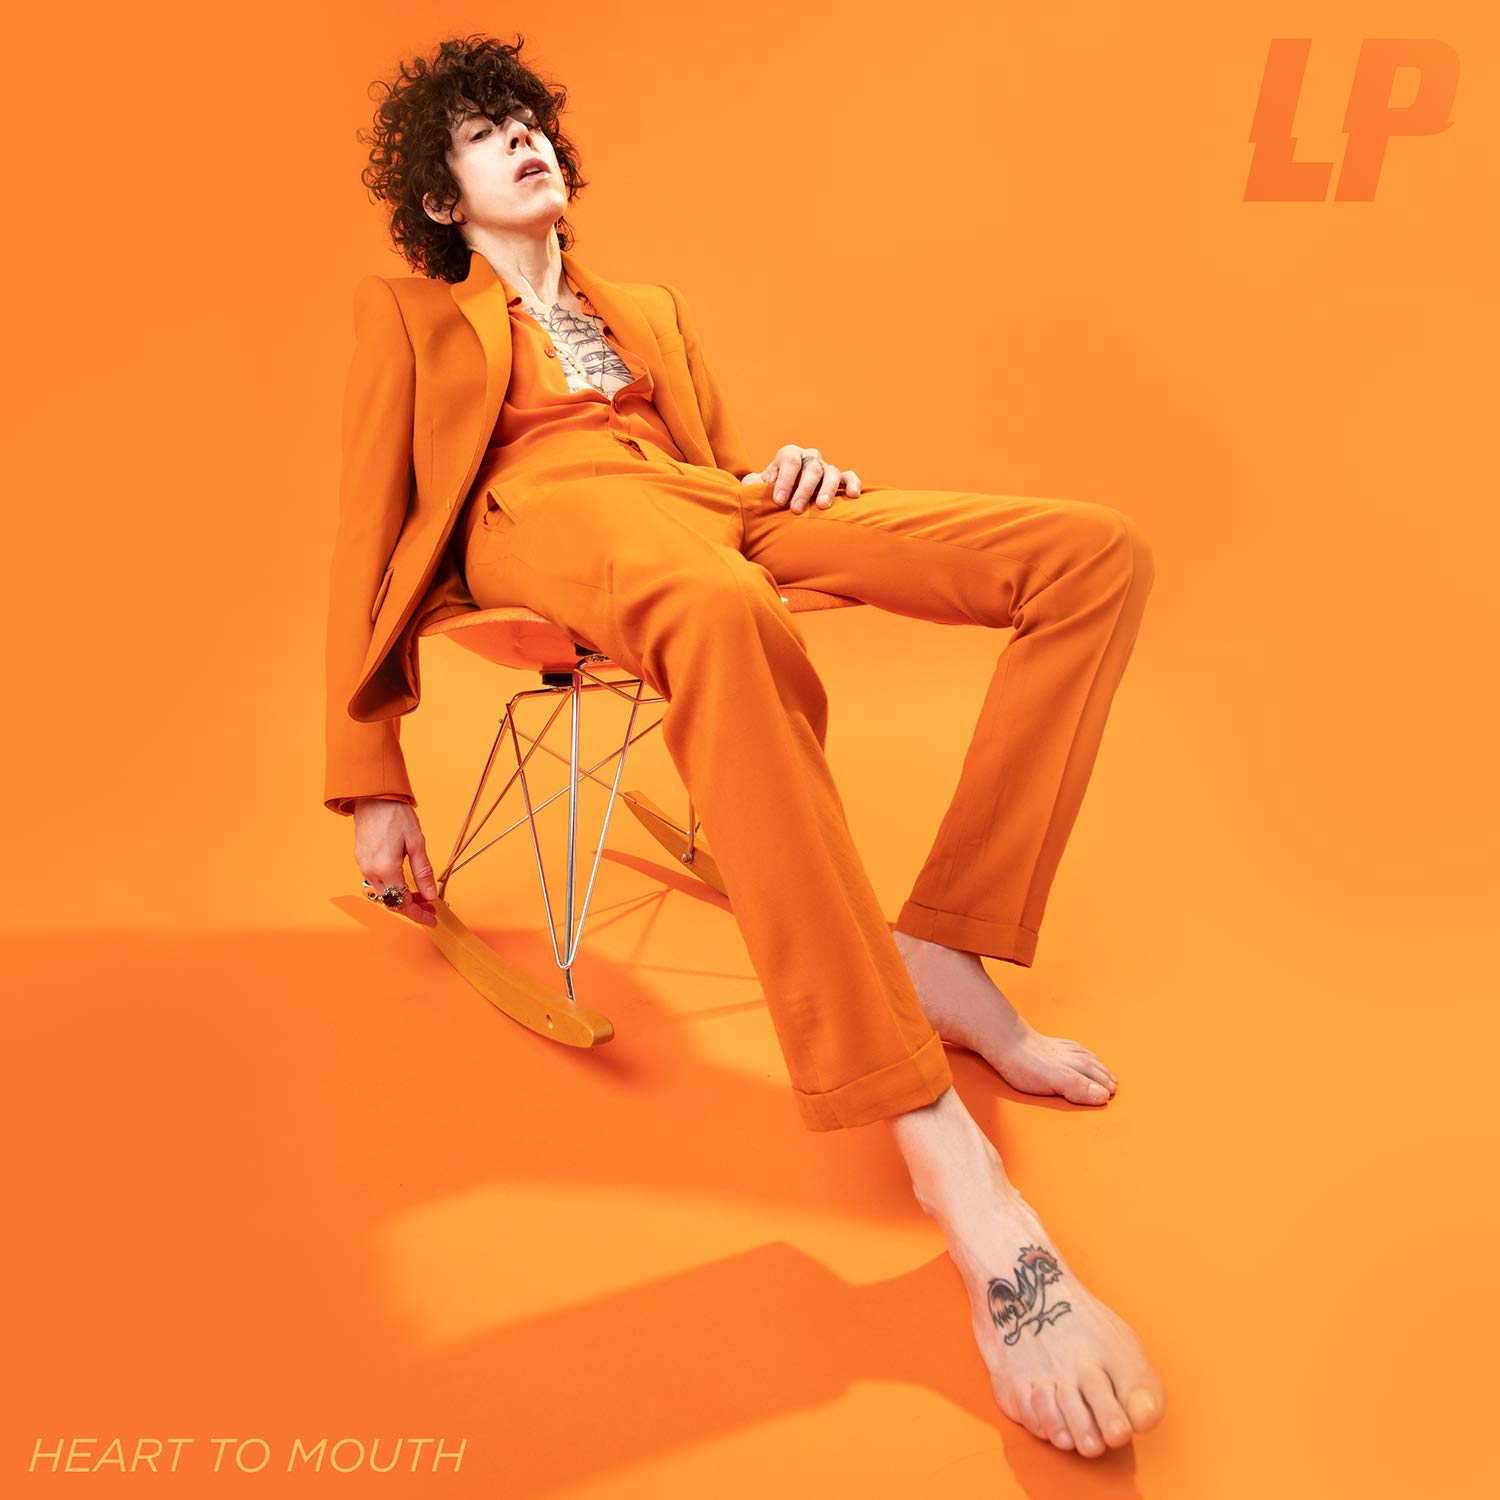 CD : LP - Heart To Mouth (CD)